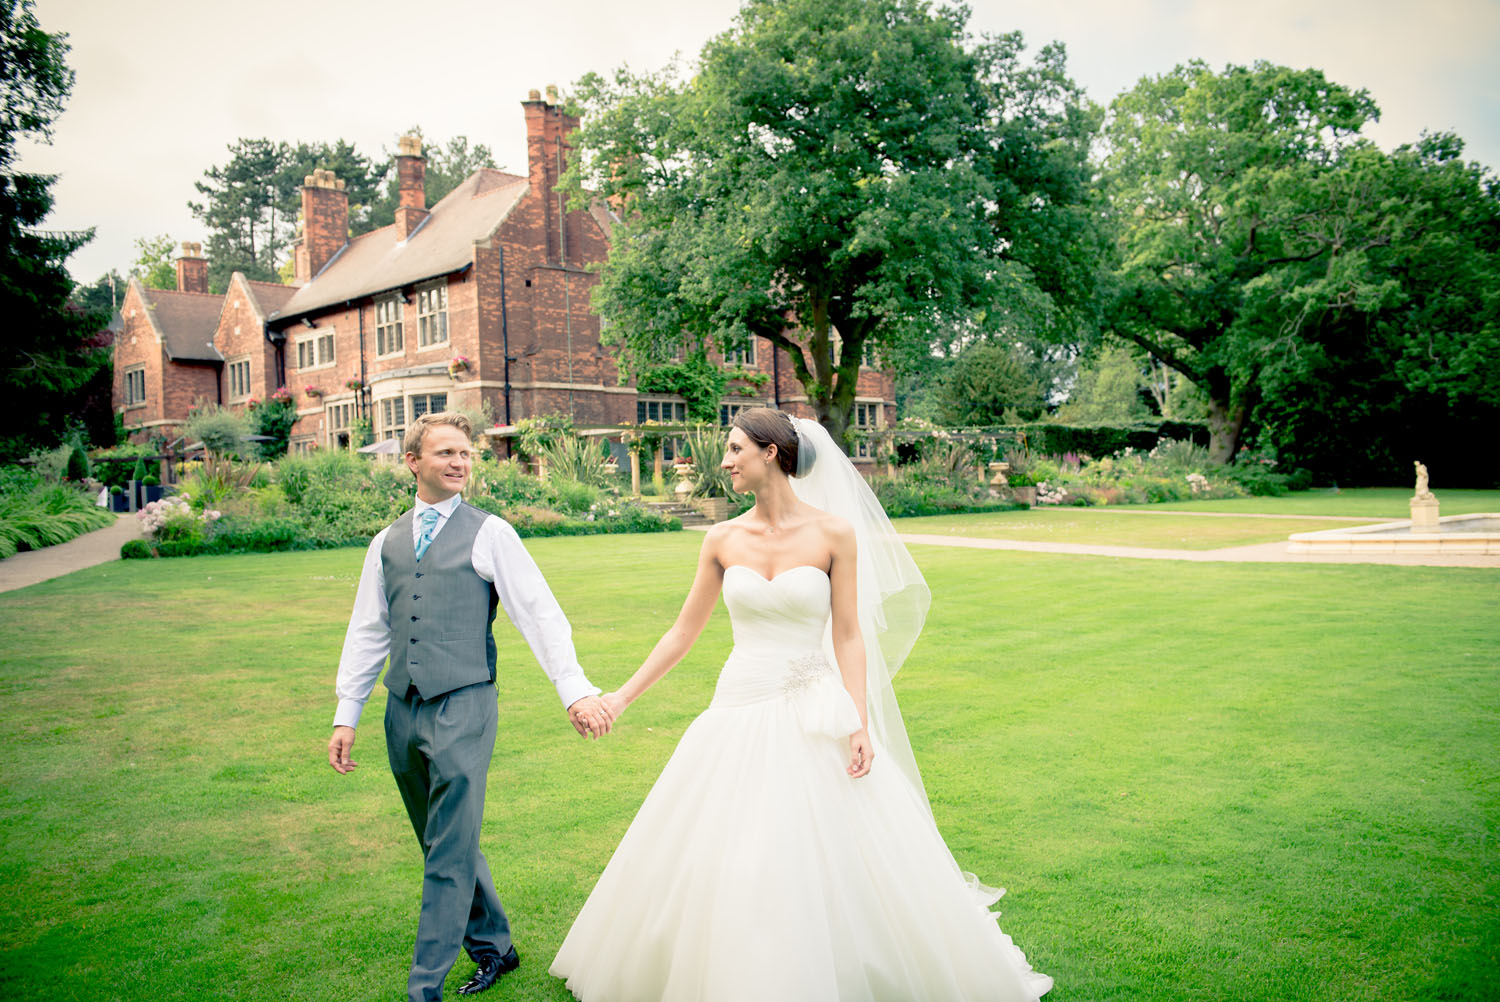 Bride and Groom waling together in the grounds of a hotel.